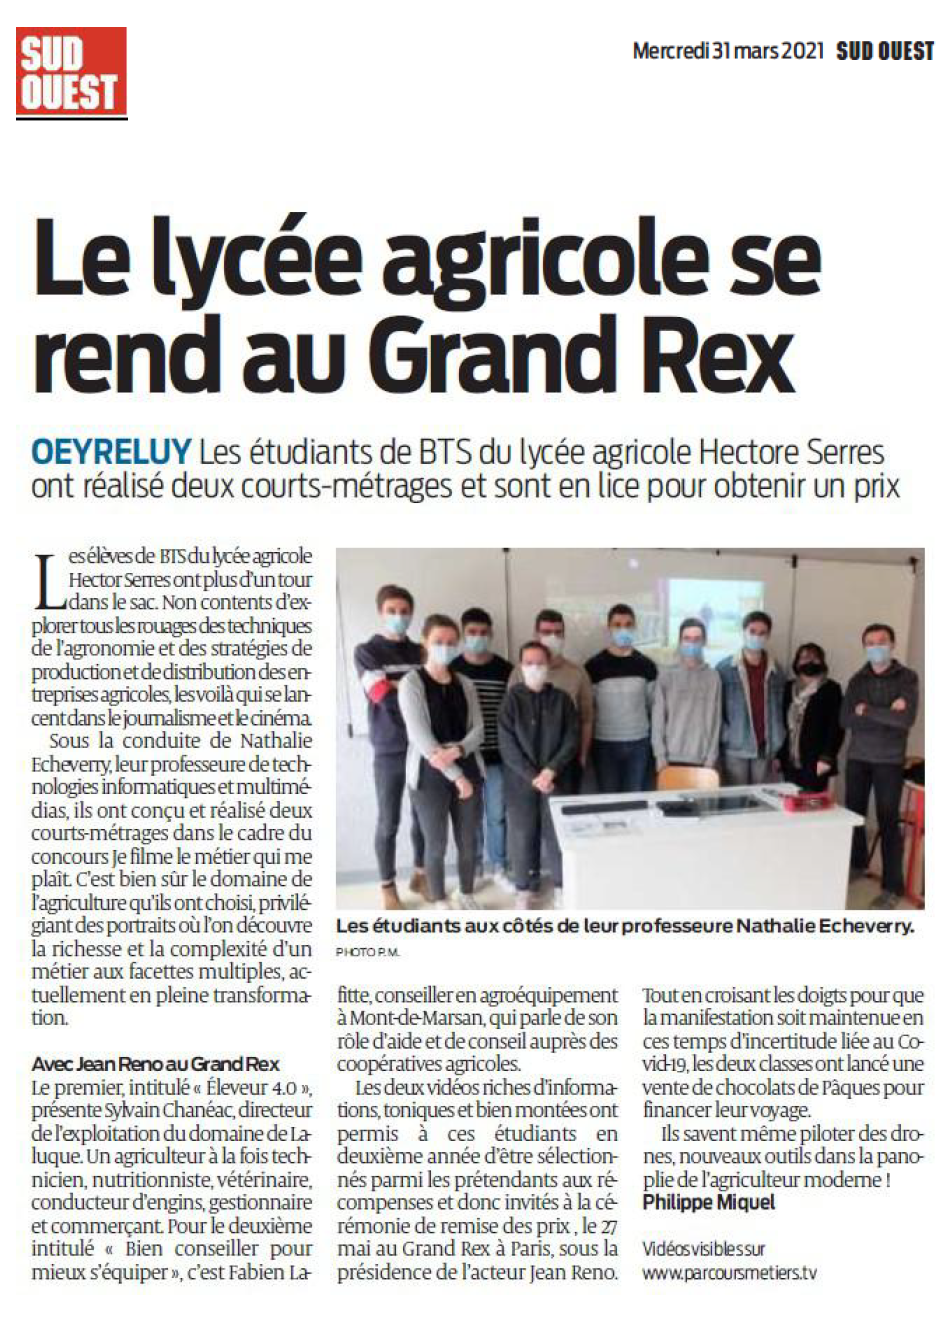 Sud Ouest - 31/03/2021